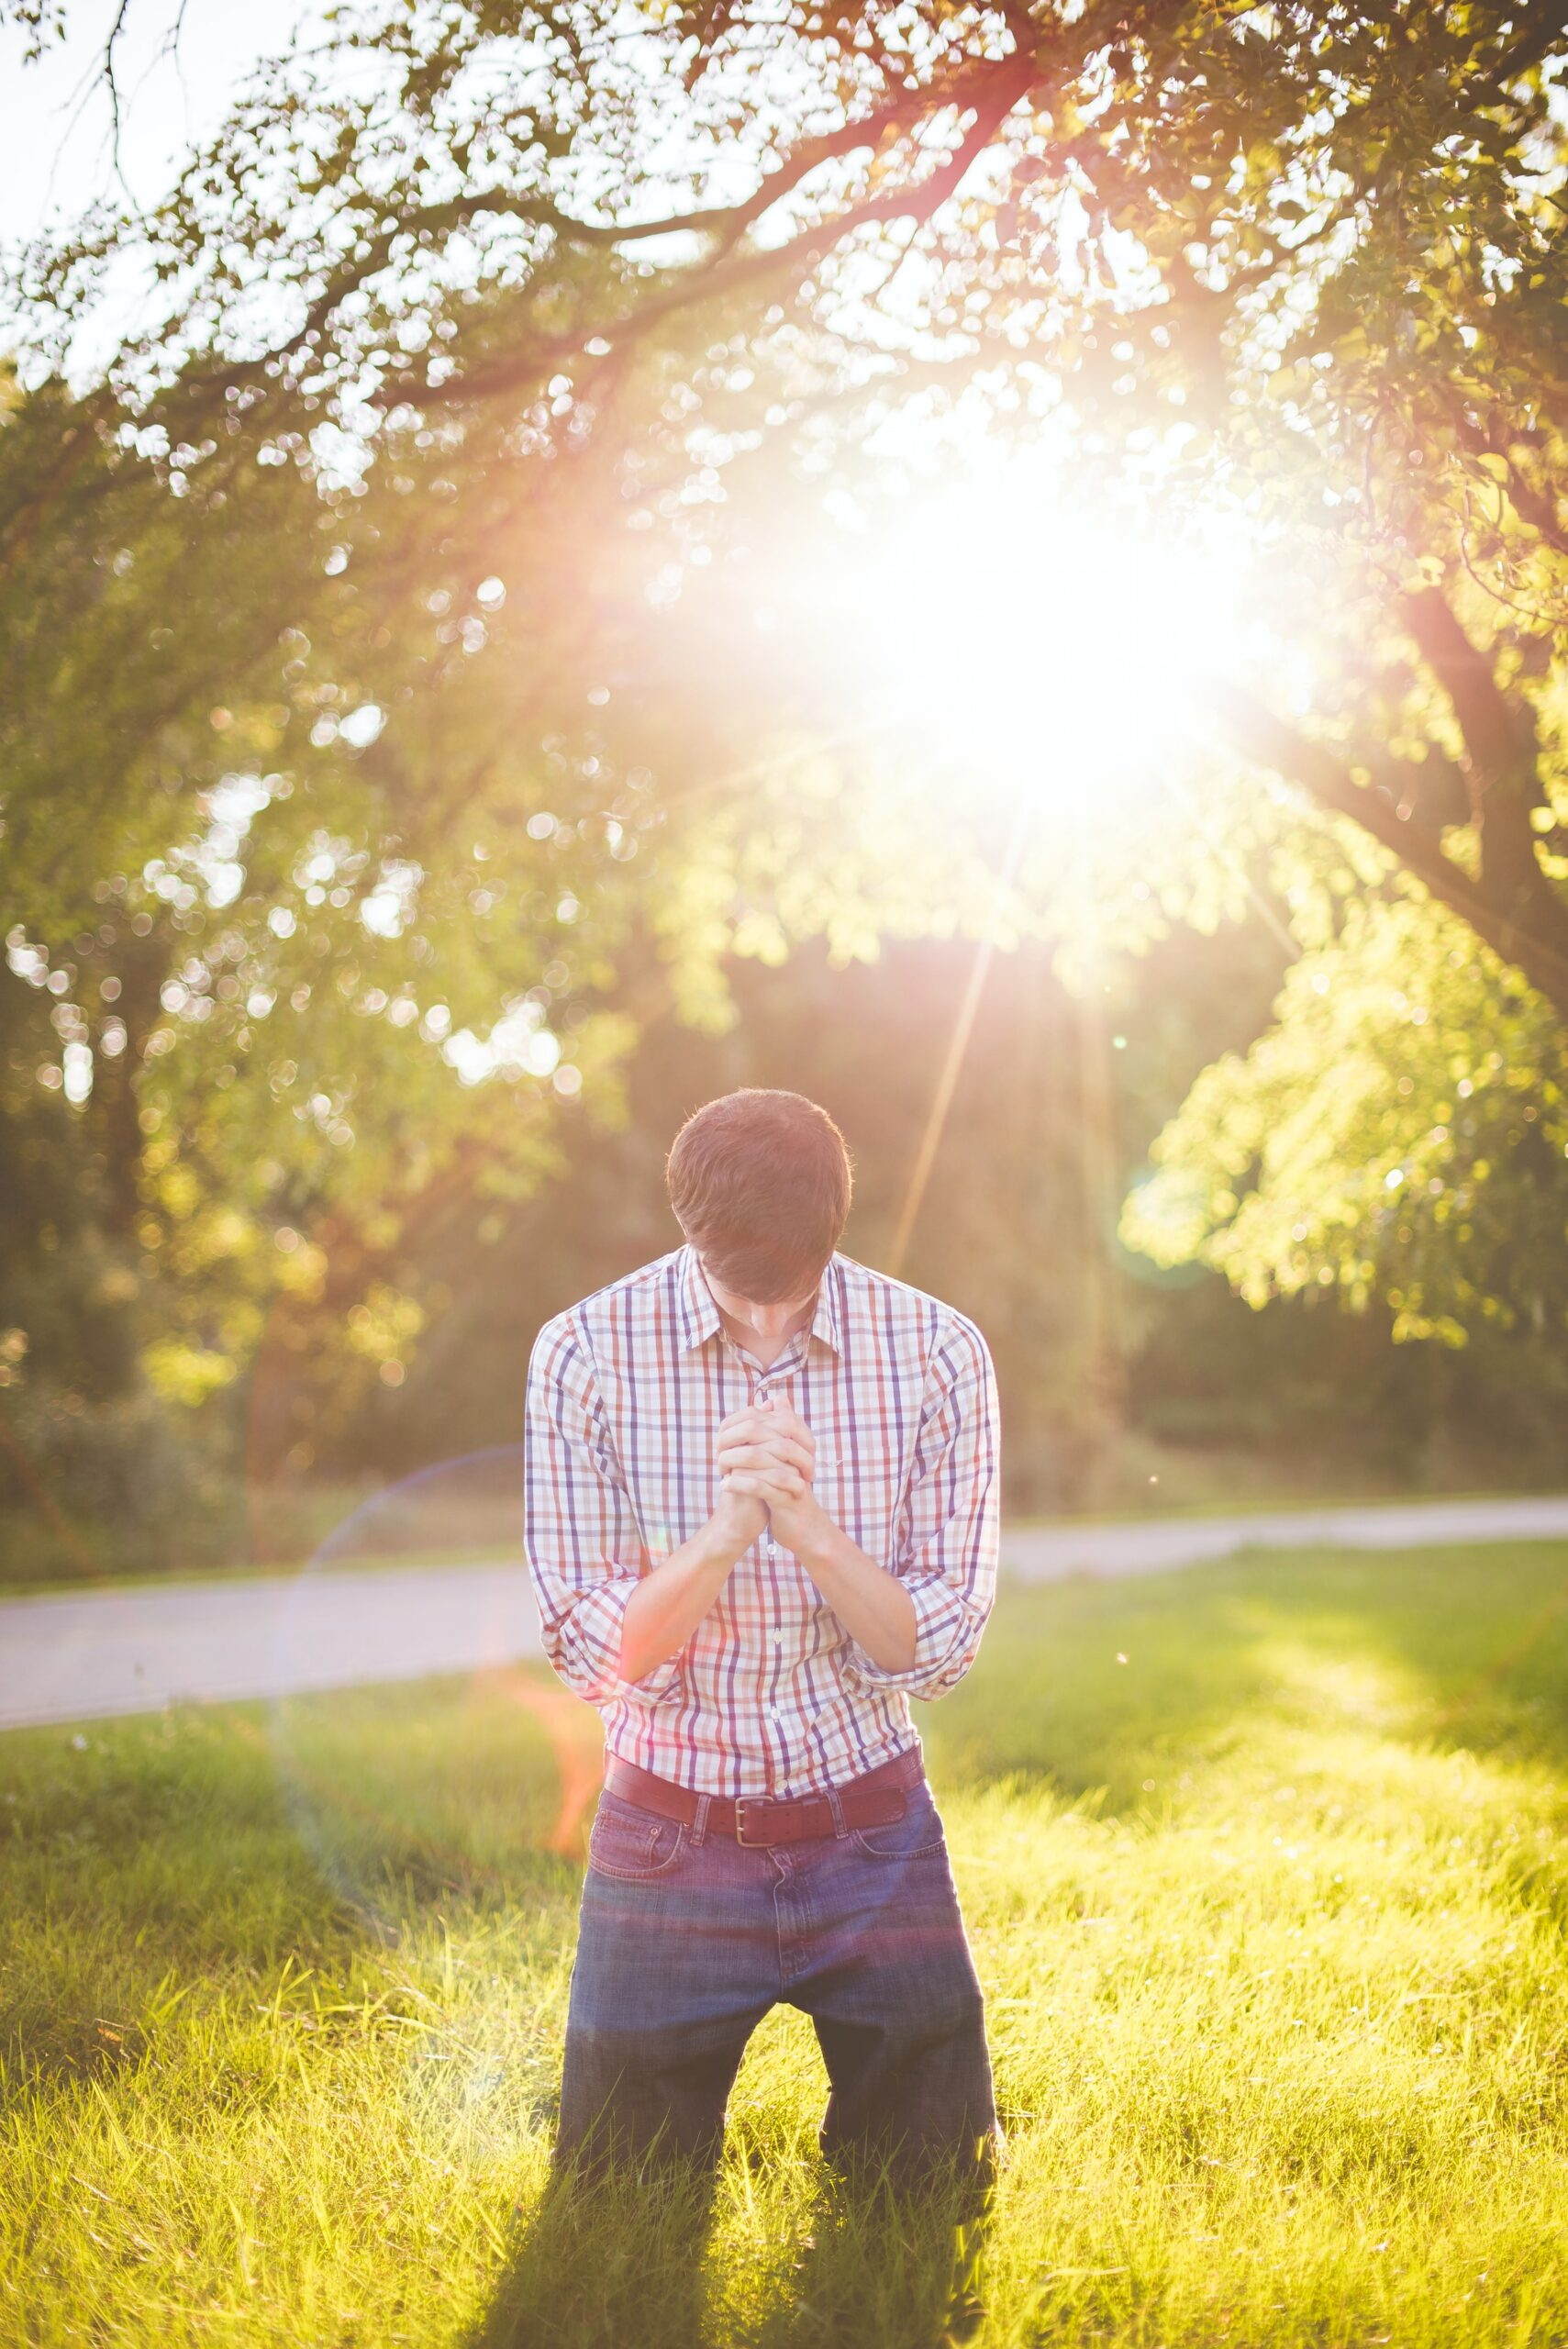 Praying daily can help you through many issues